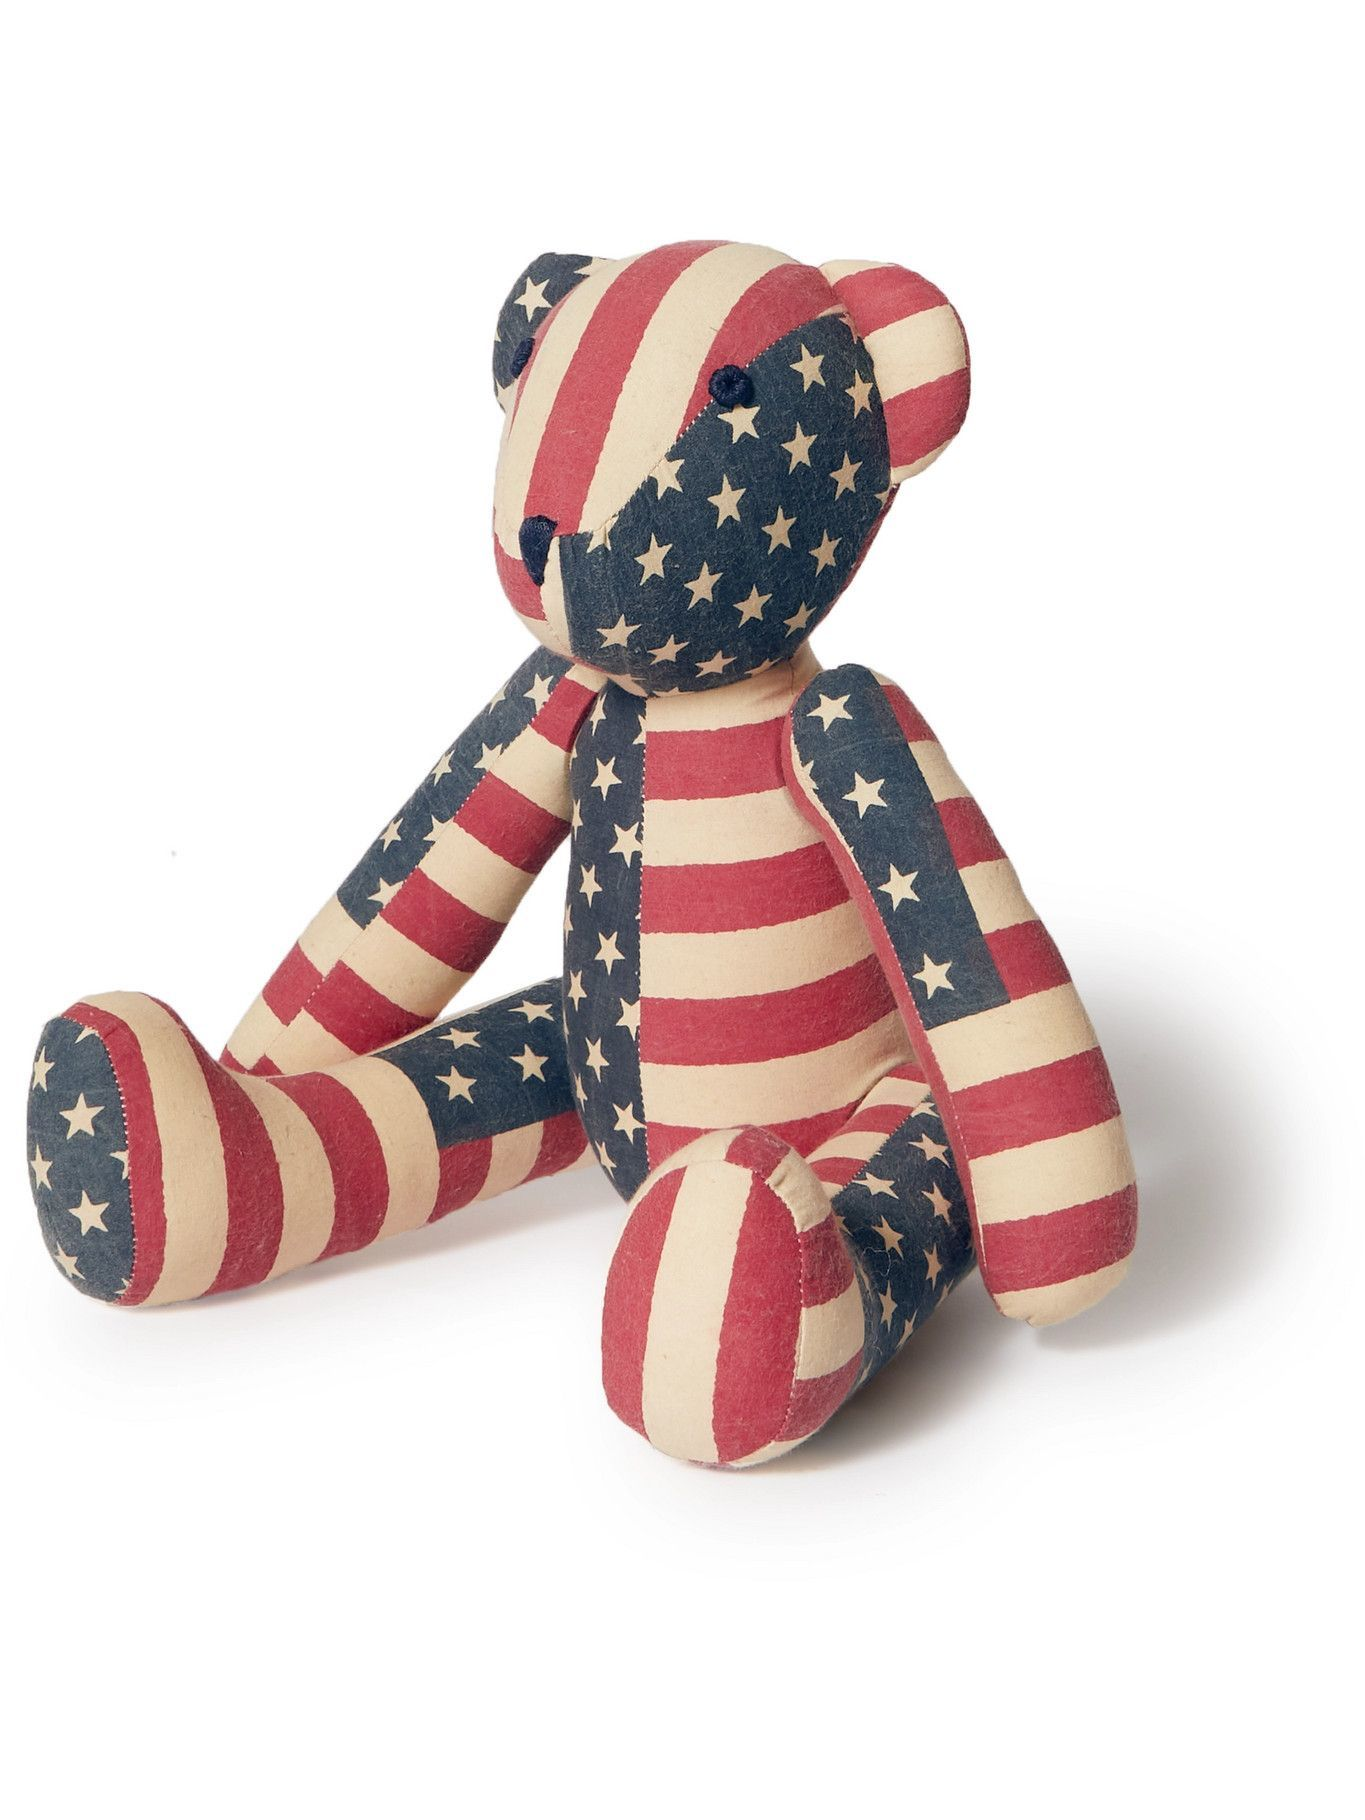 RRL - Limited Edition Printed Patchwork Cotton Teddy Bear